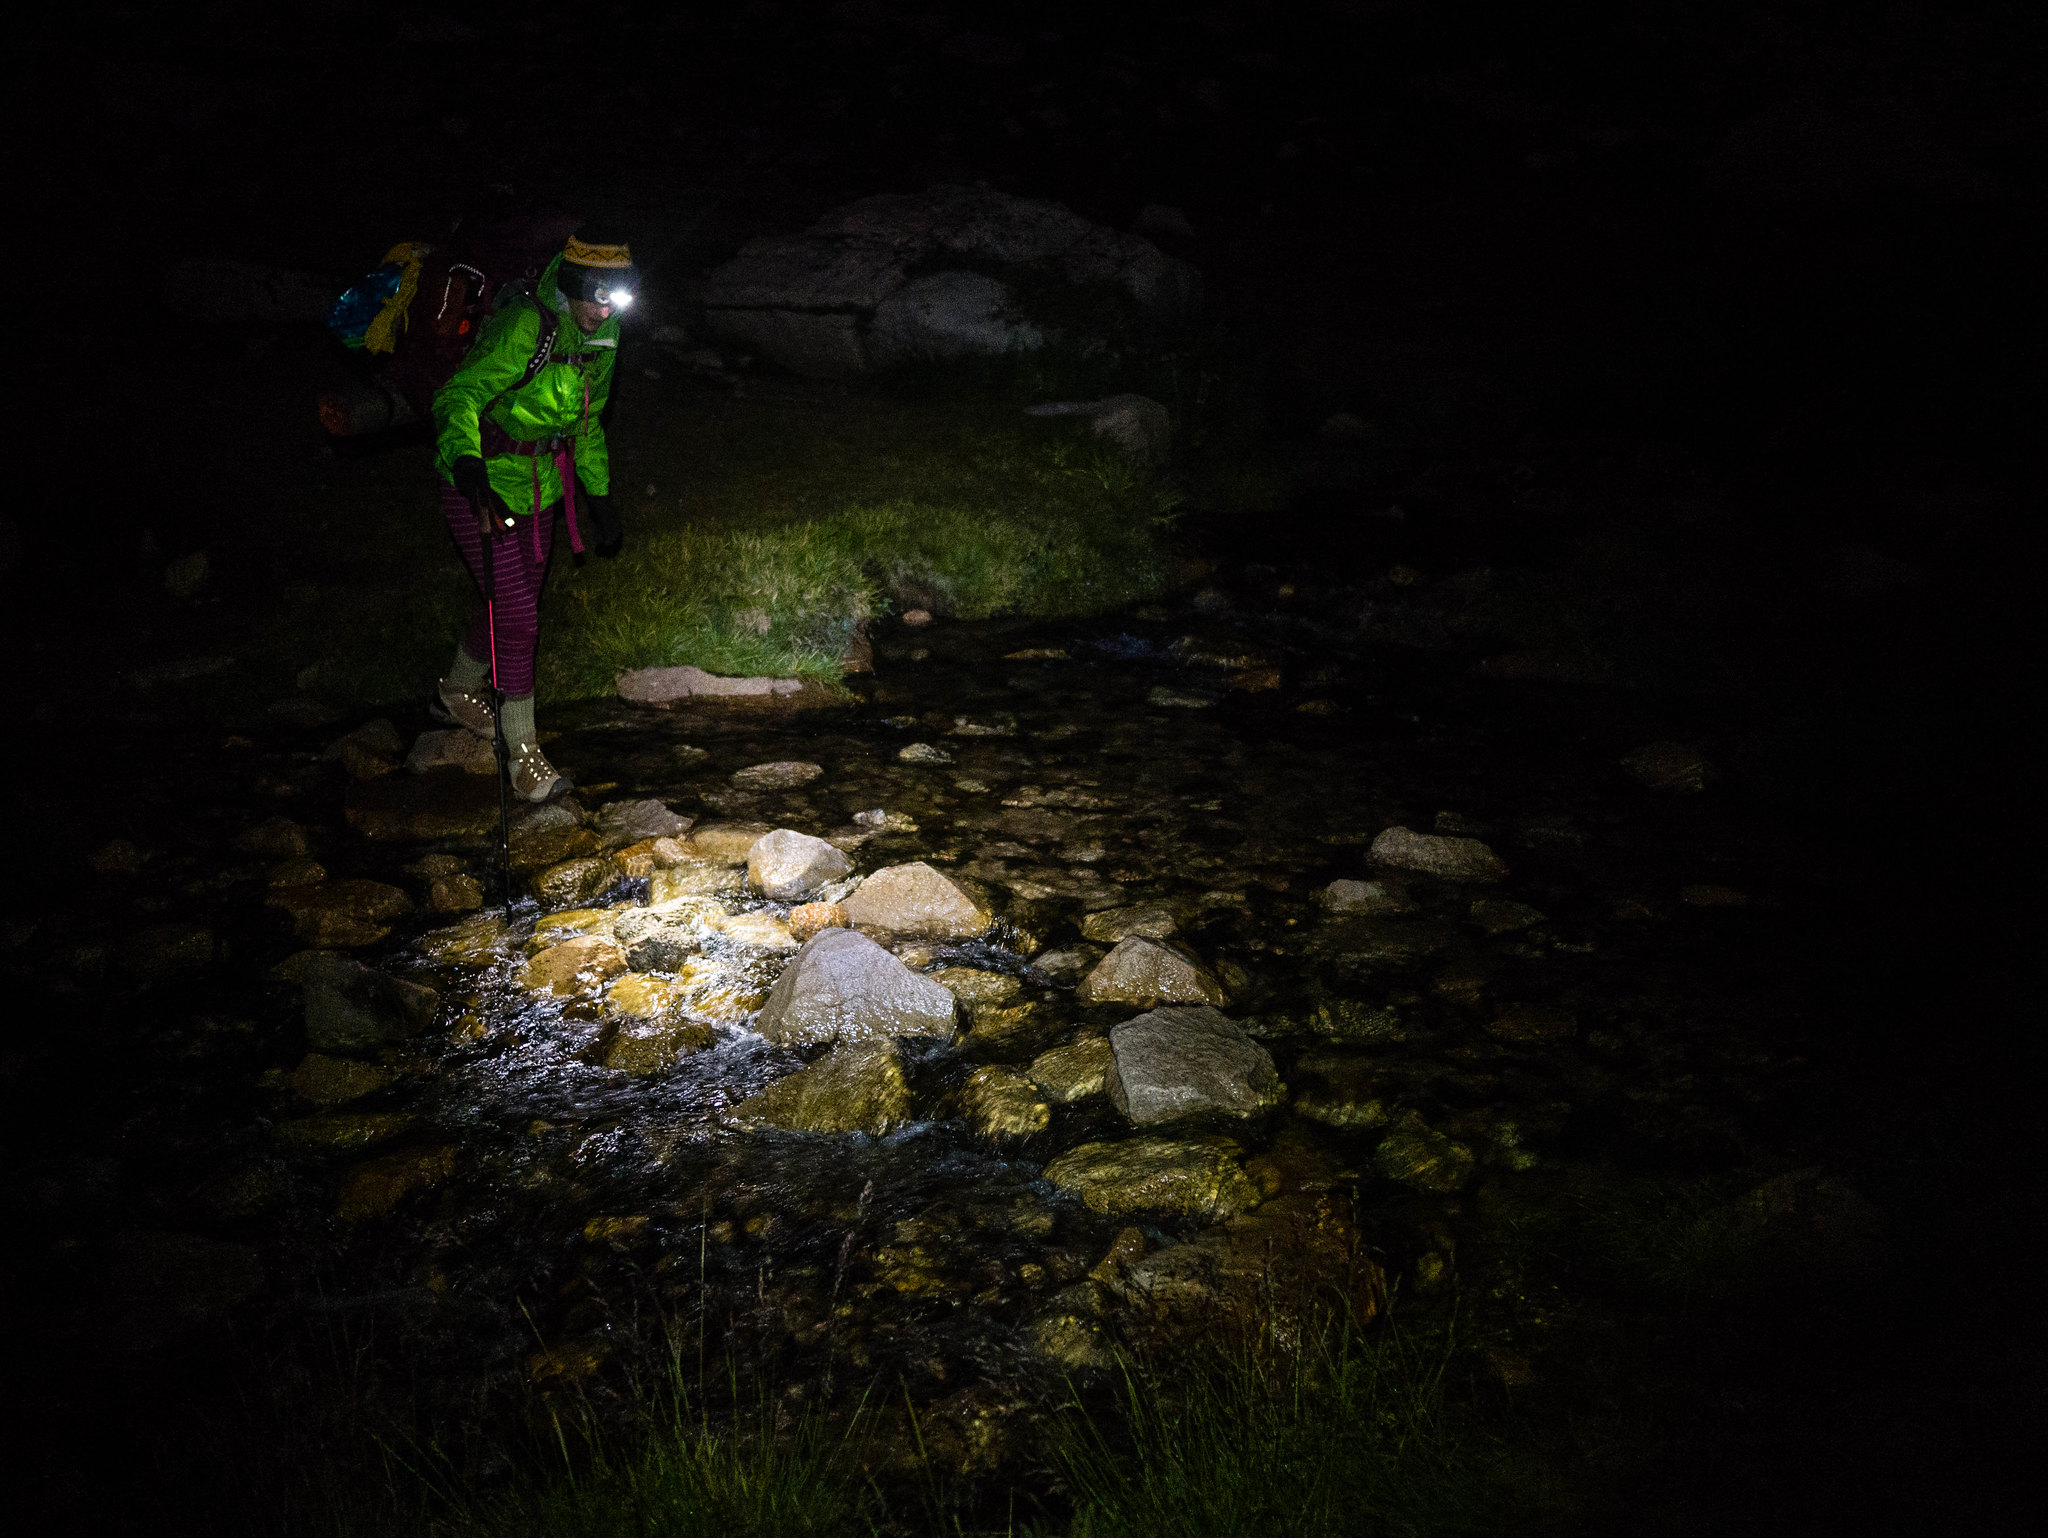 Stream crossings are more exciting at 4am!